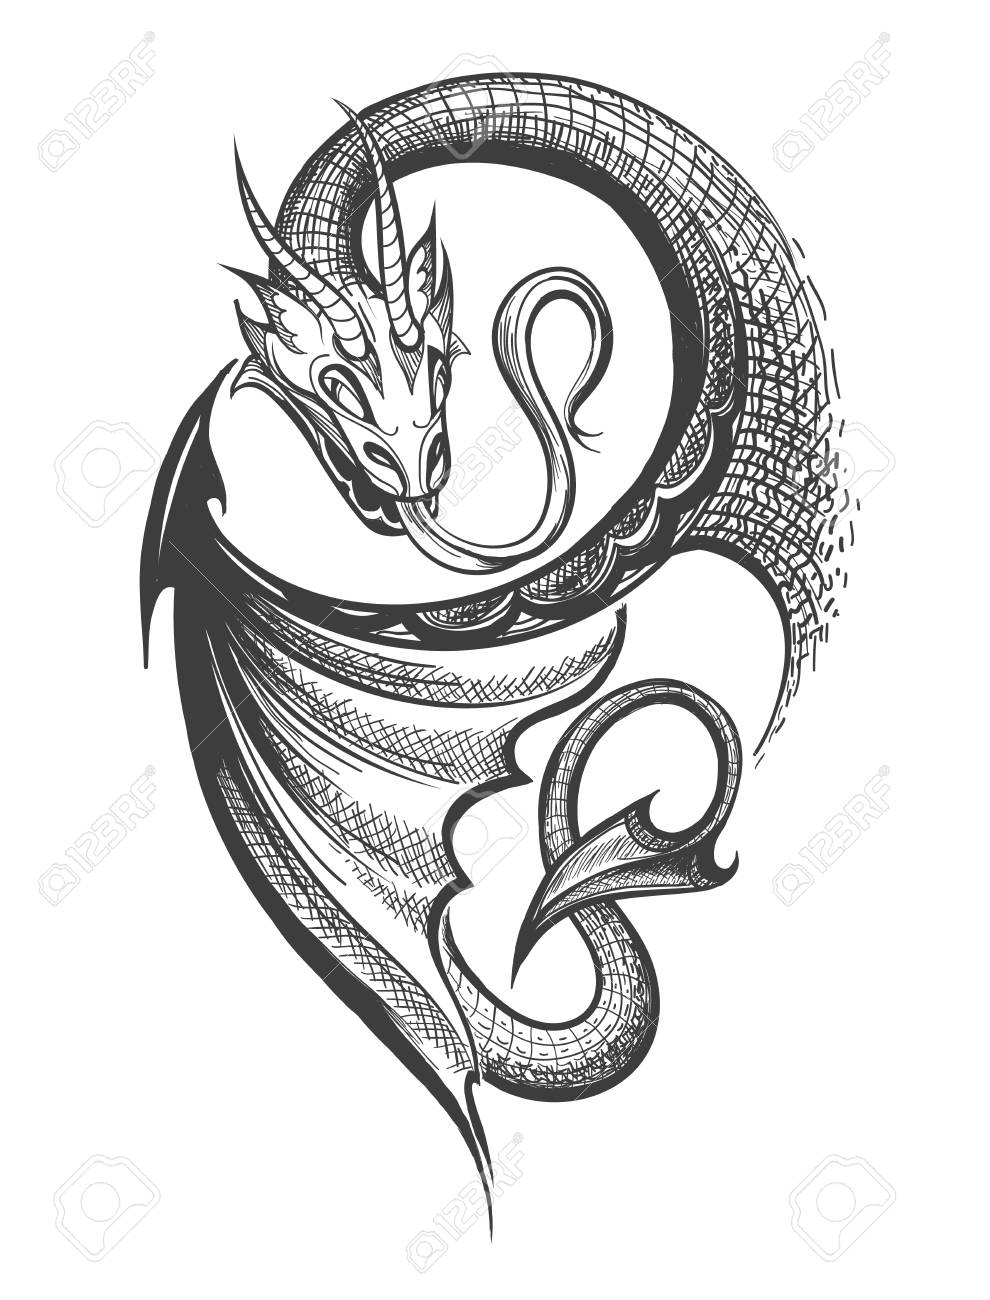 Hand made Dragon drawn in Tattoo Engraving Style. Vector Illustration. - 105287228